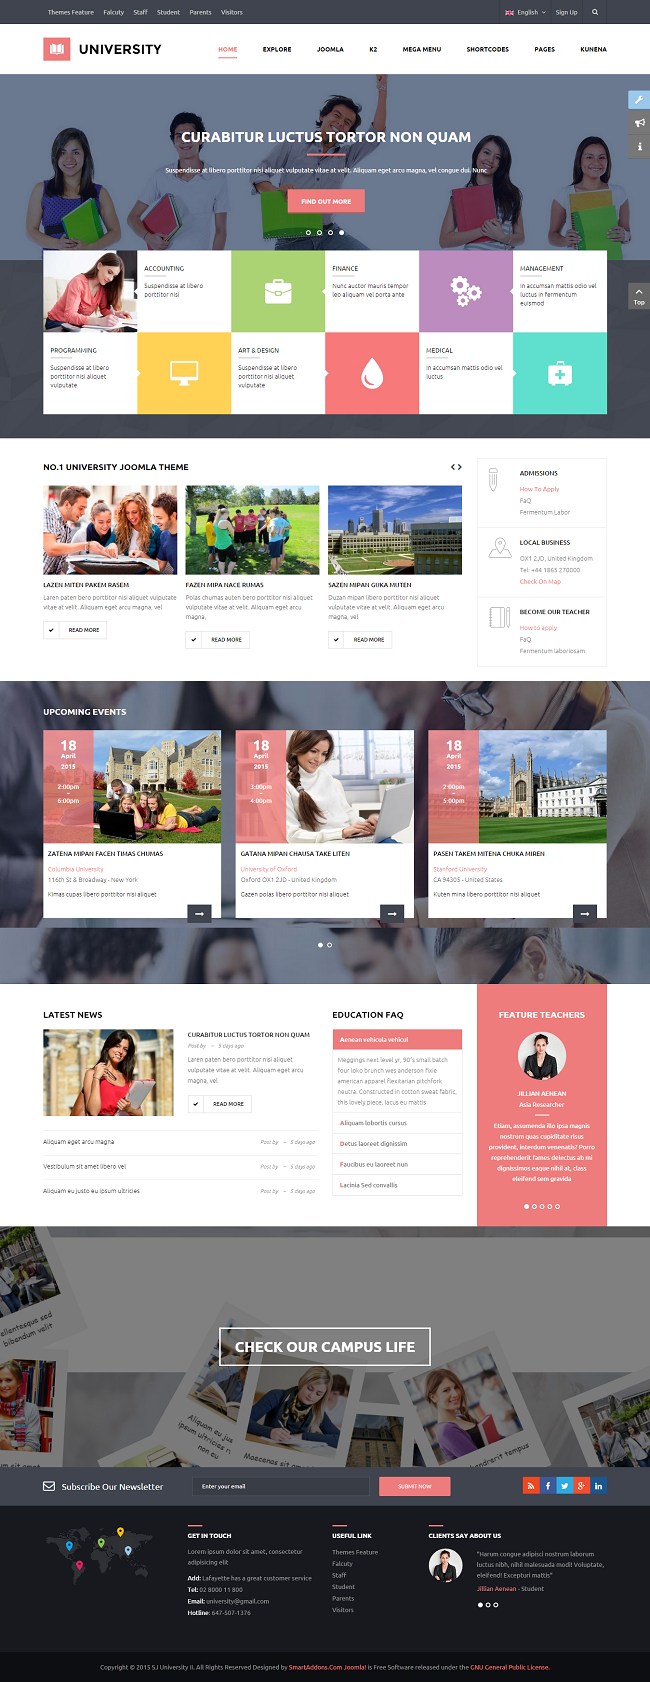 SJ University II - Responsive Joomla Educational Template - 07_red.png